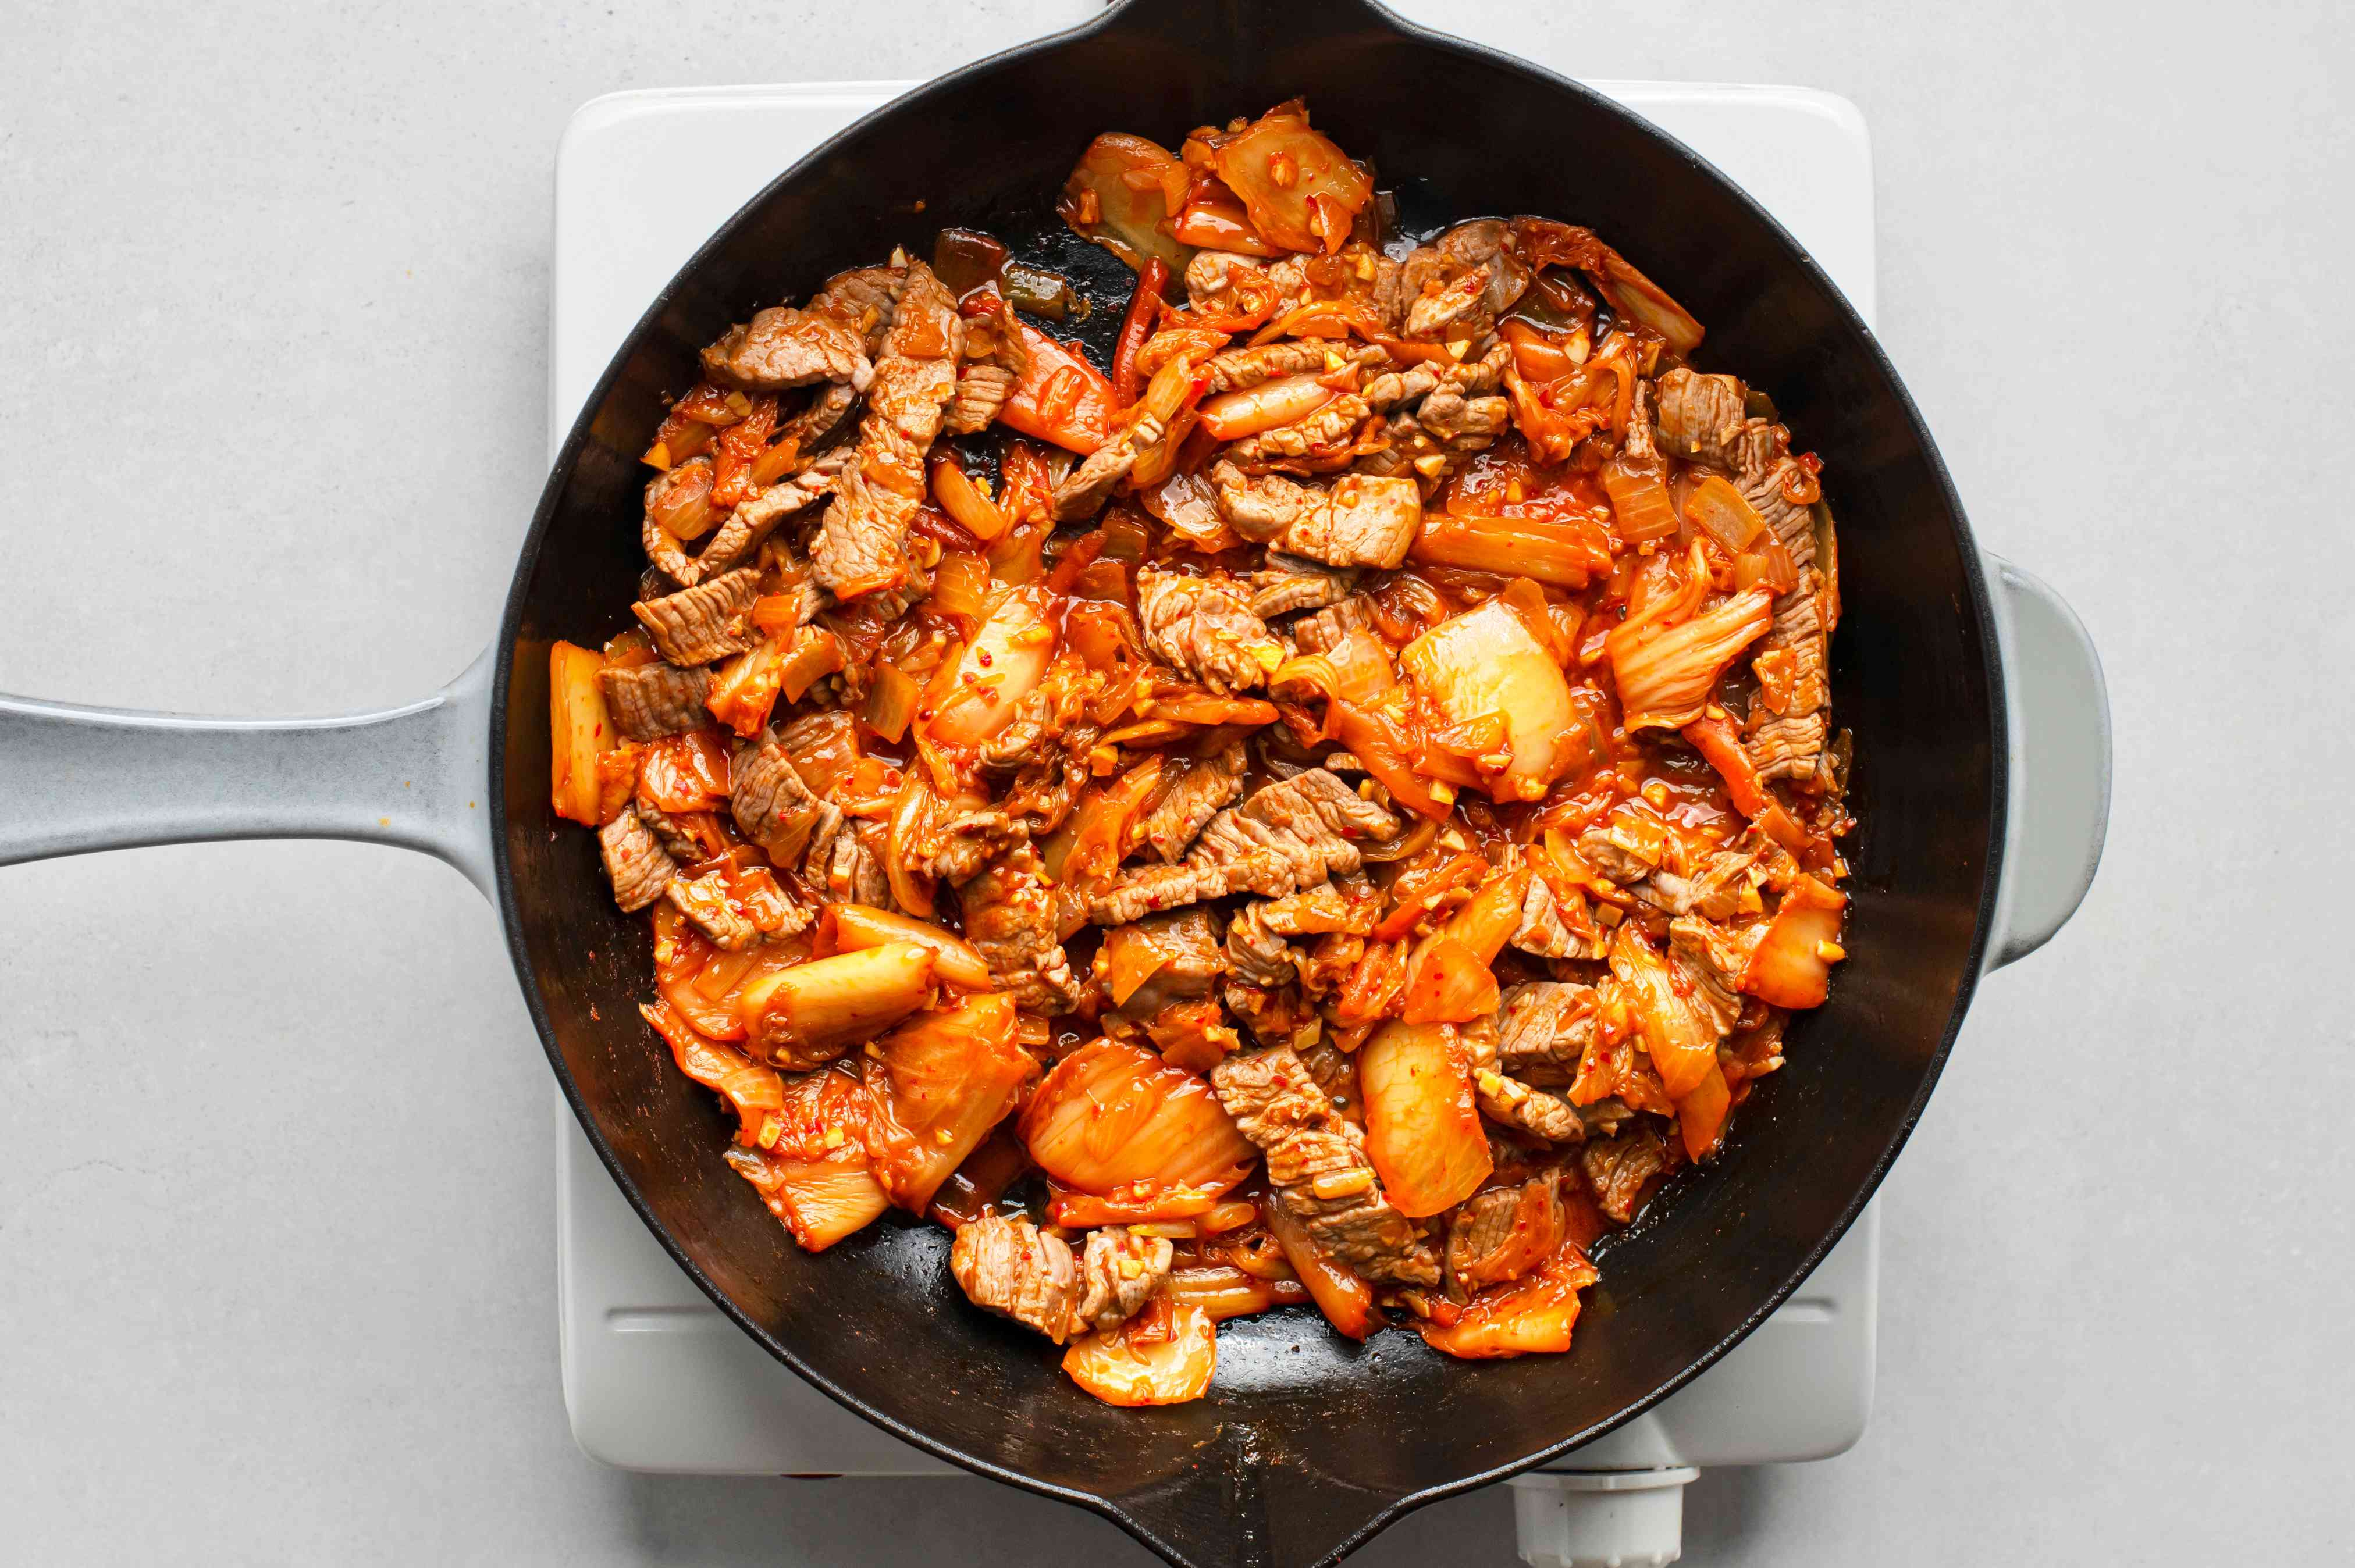 Add the meat to the kimchi mixture and continue to sauté